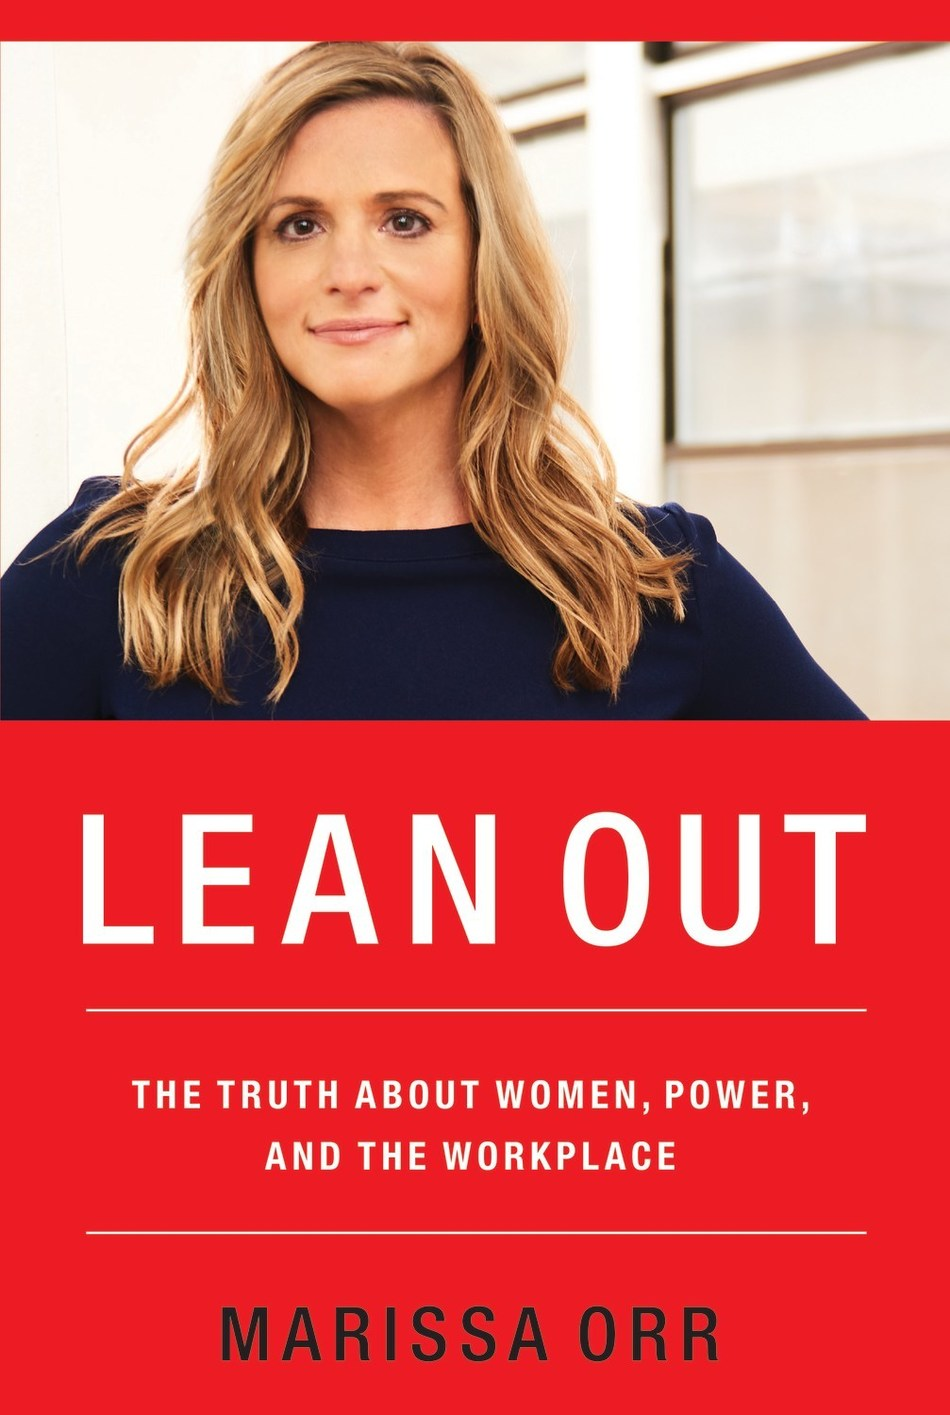 """Marissa Orr to release new book titled """"Lean Out: The Truth About Women, Power, and the Workplace"""" via HarperCollins Leadership on June 11"""